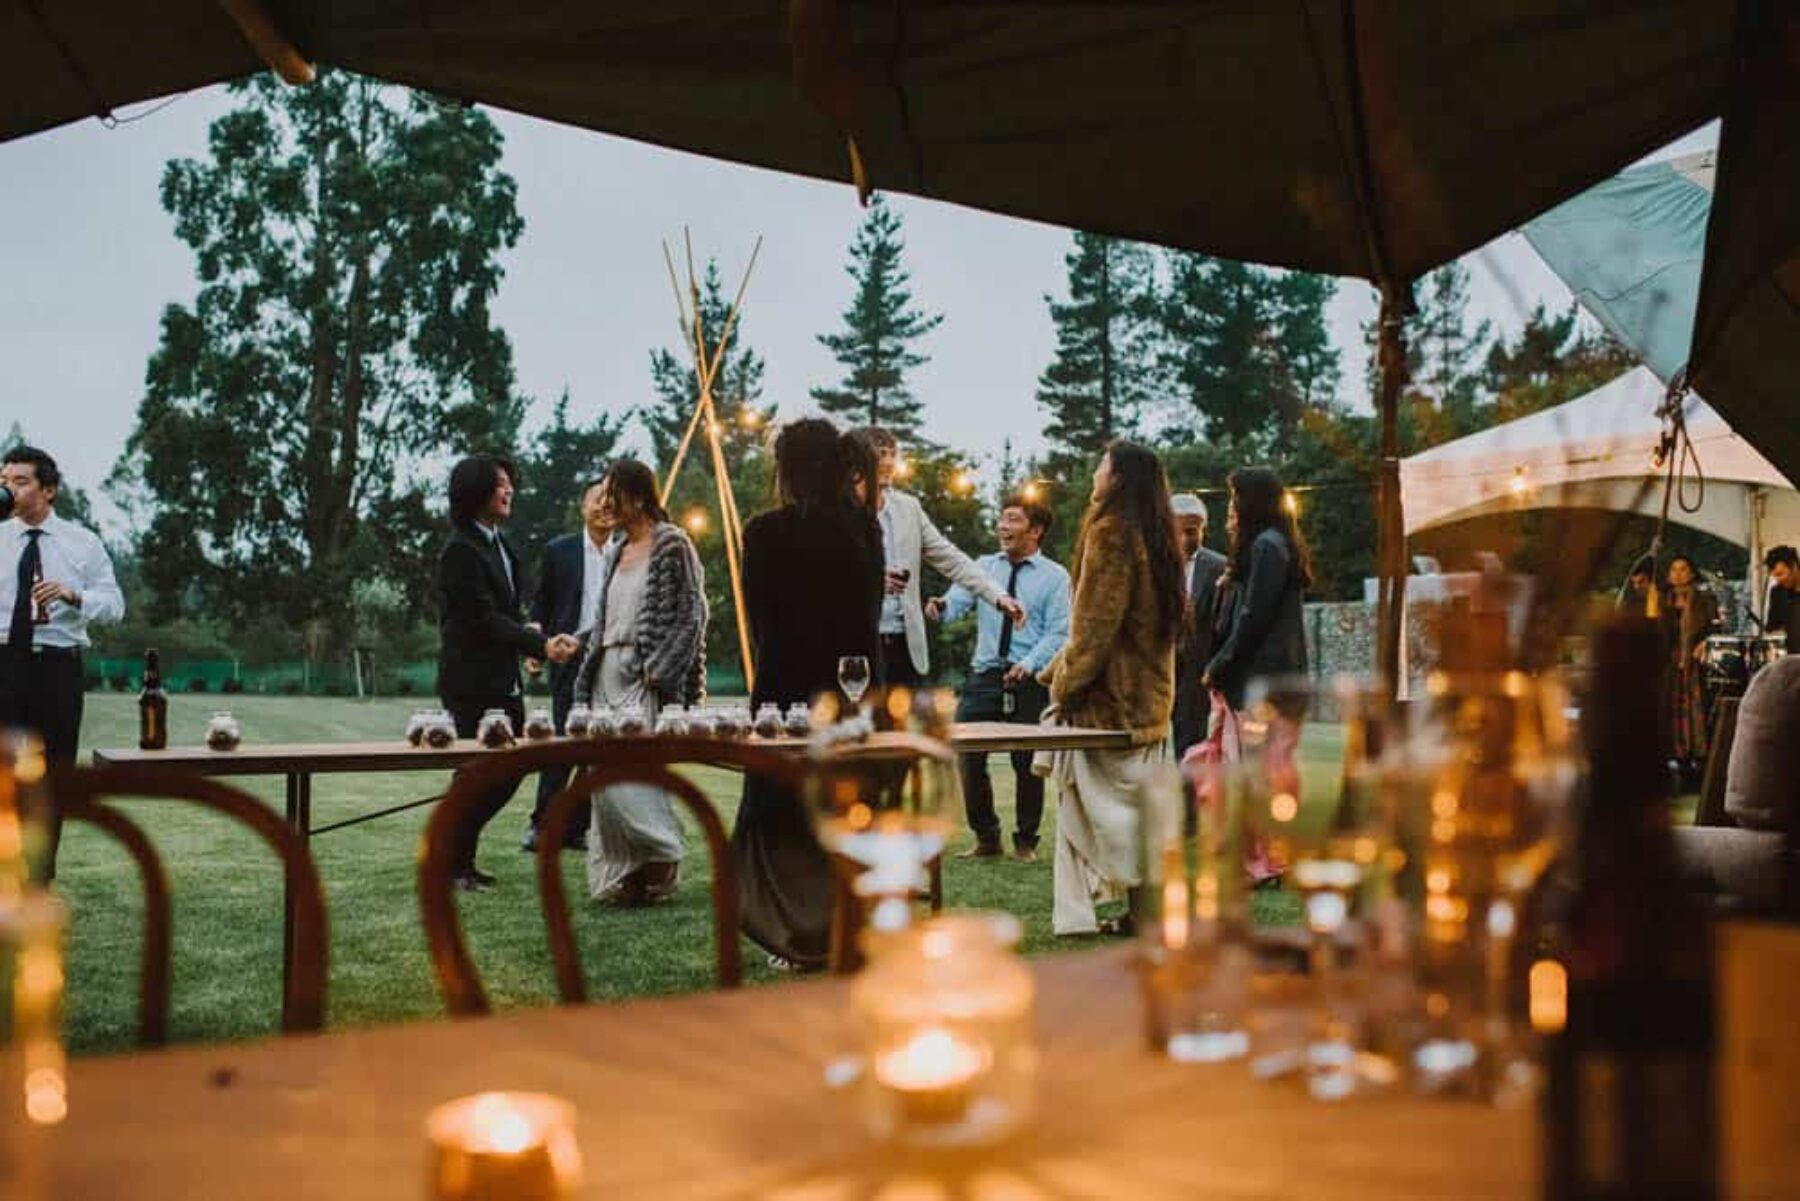 Boho tipi wedding on an olive farm in Christchurch NZ - photography by Paul Tatterson